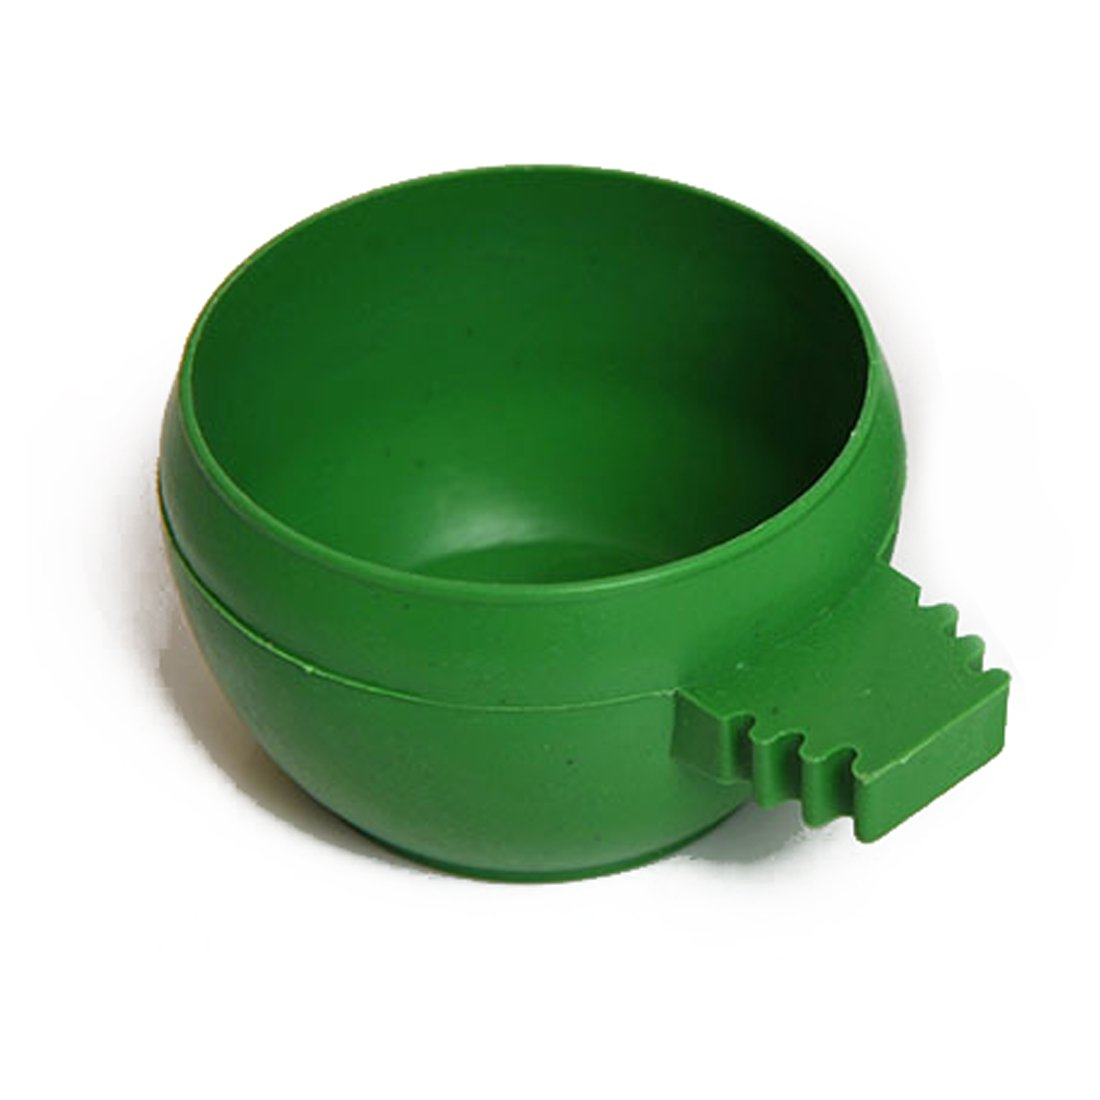 Parrot Aviary Pet Cage Plastic Round Bird Water Food Feeder Feeding Bowl Green L